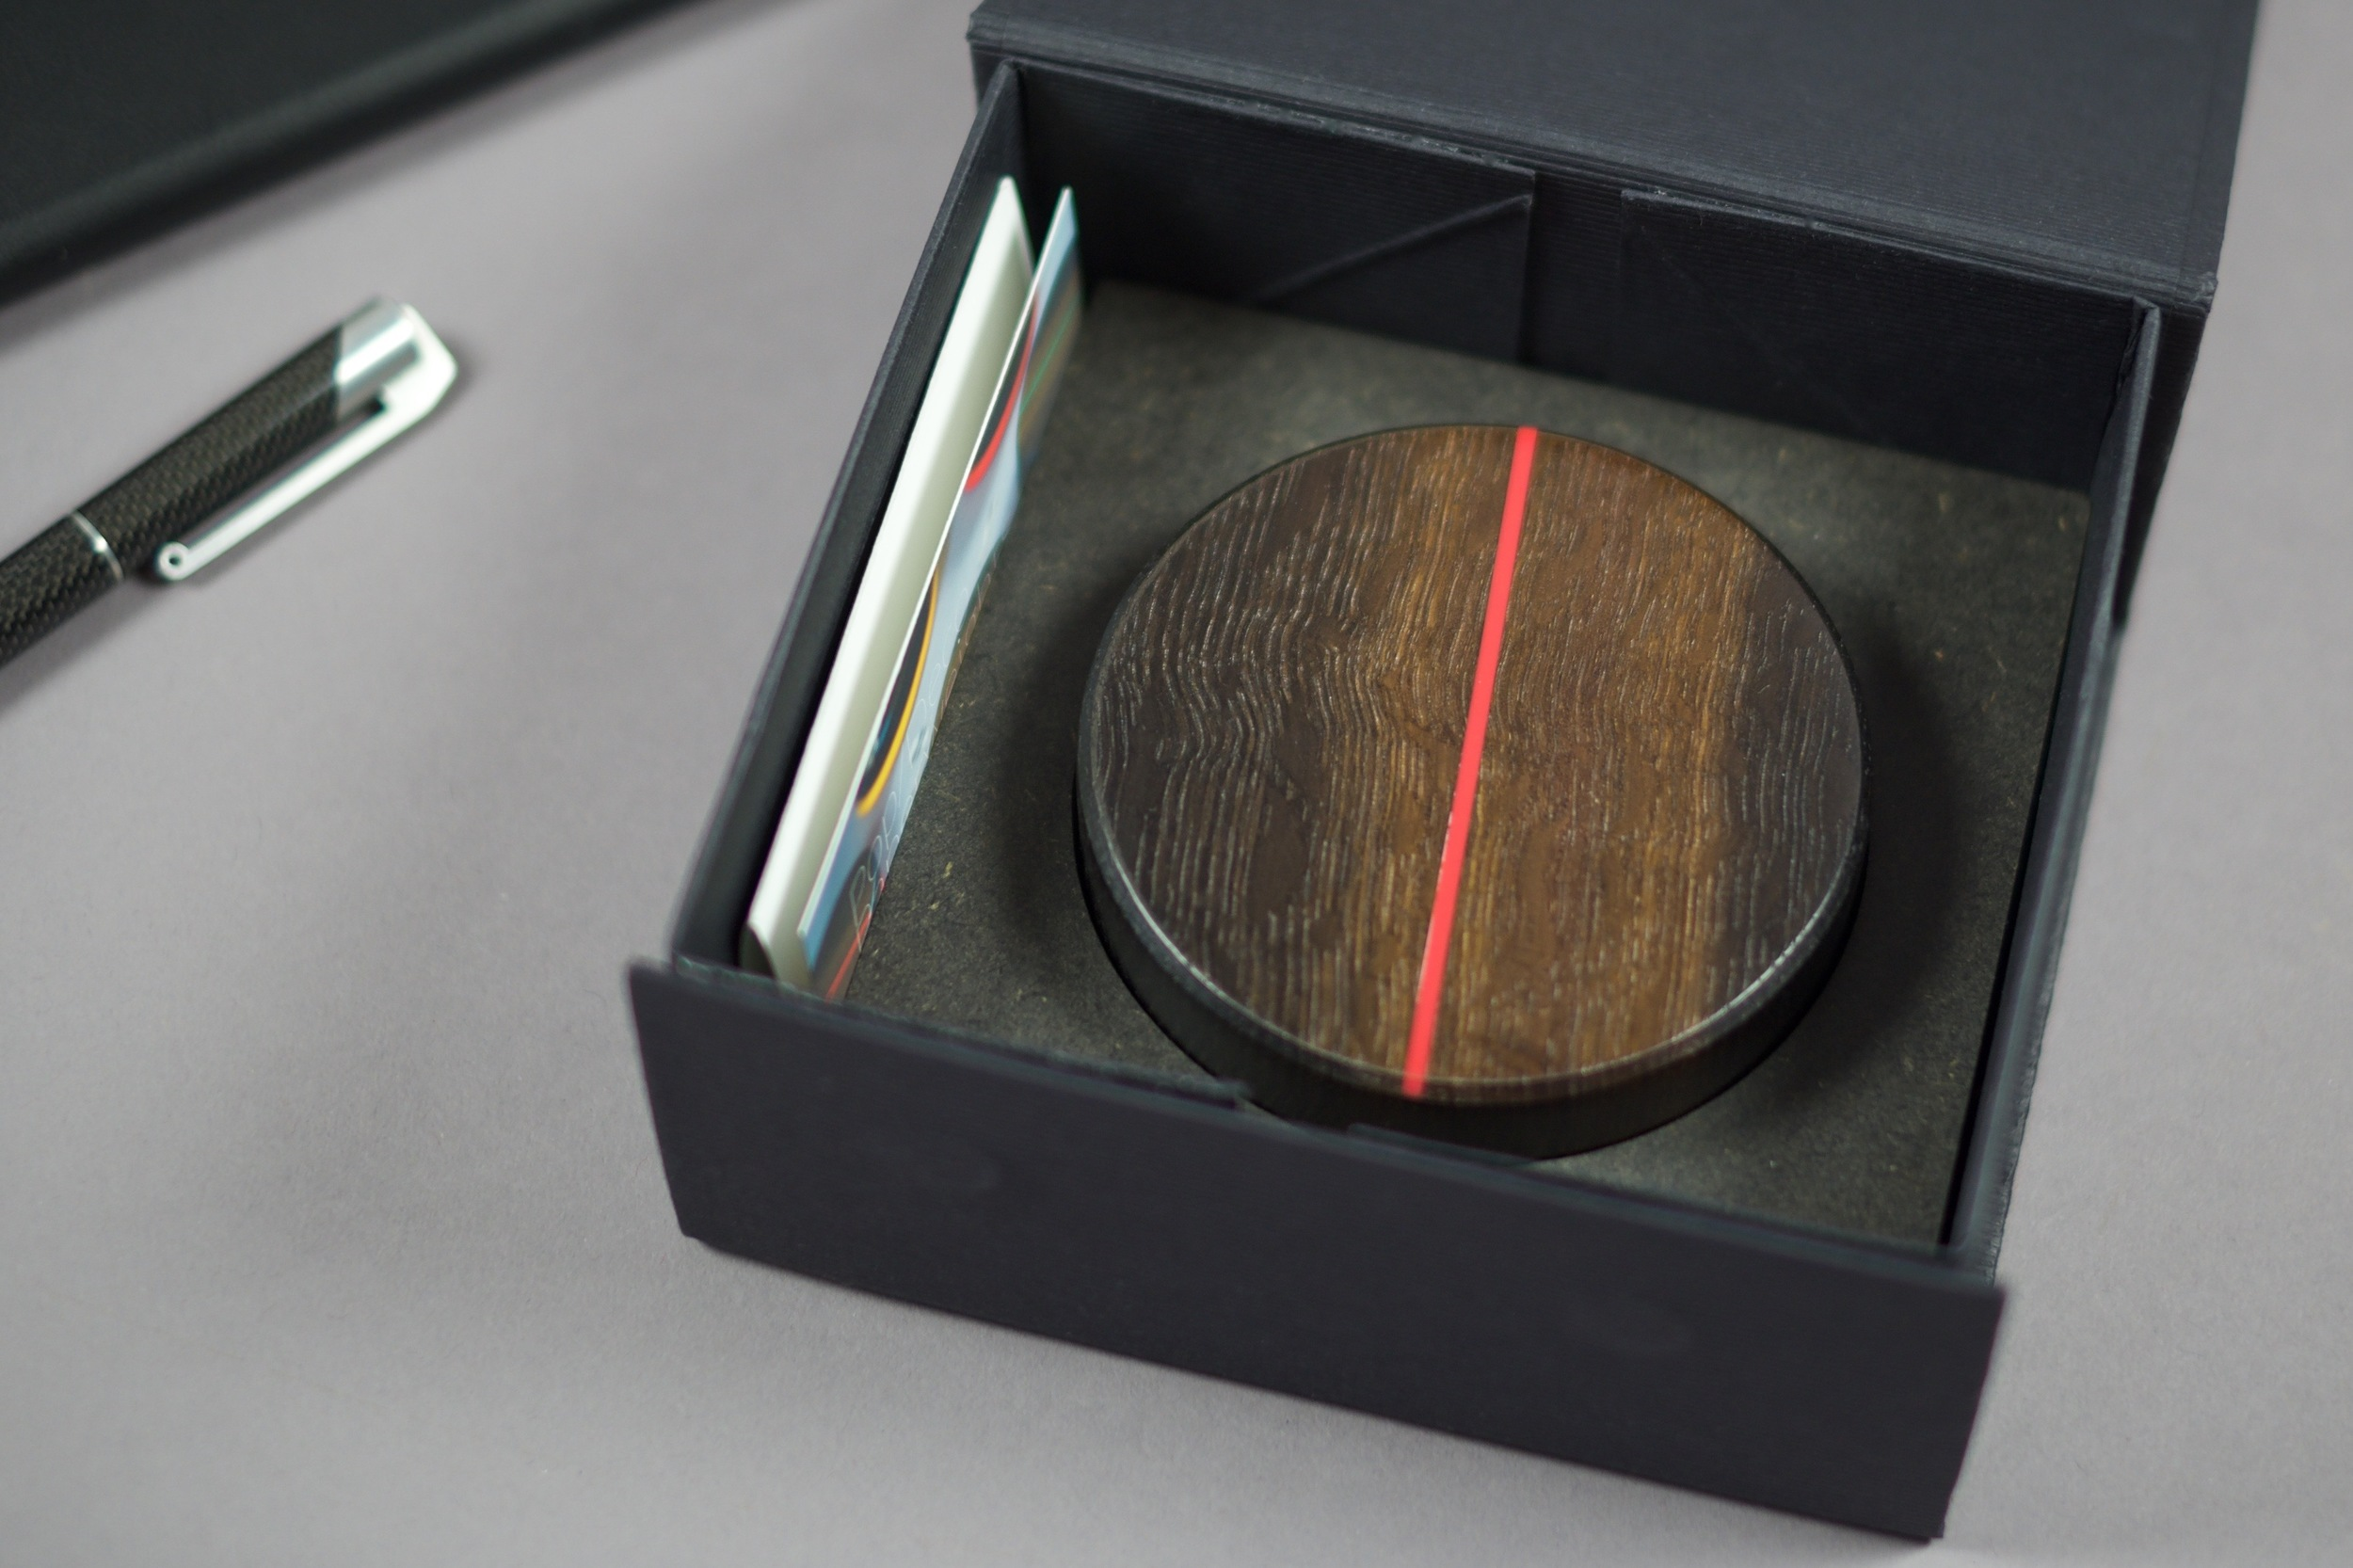 The Paperweight is presented and held in place by a twin layer of colour matching Valchromat. The box also contains a small printed leaflet outlining the materials used.